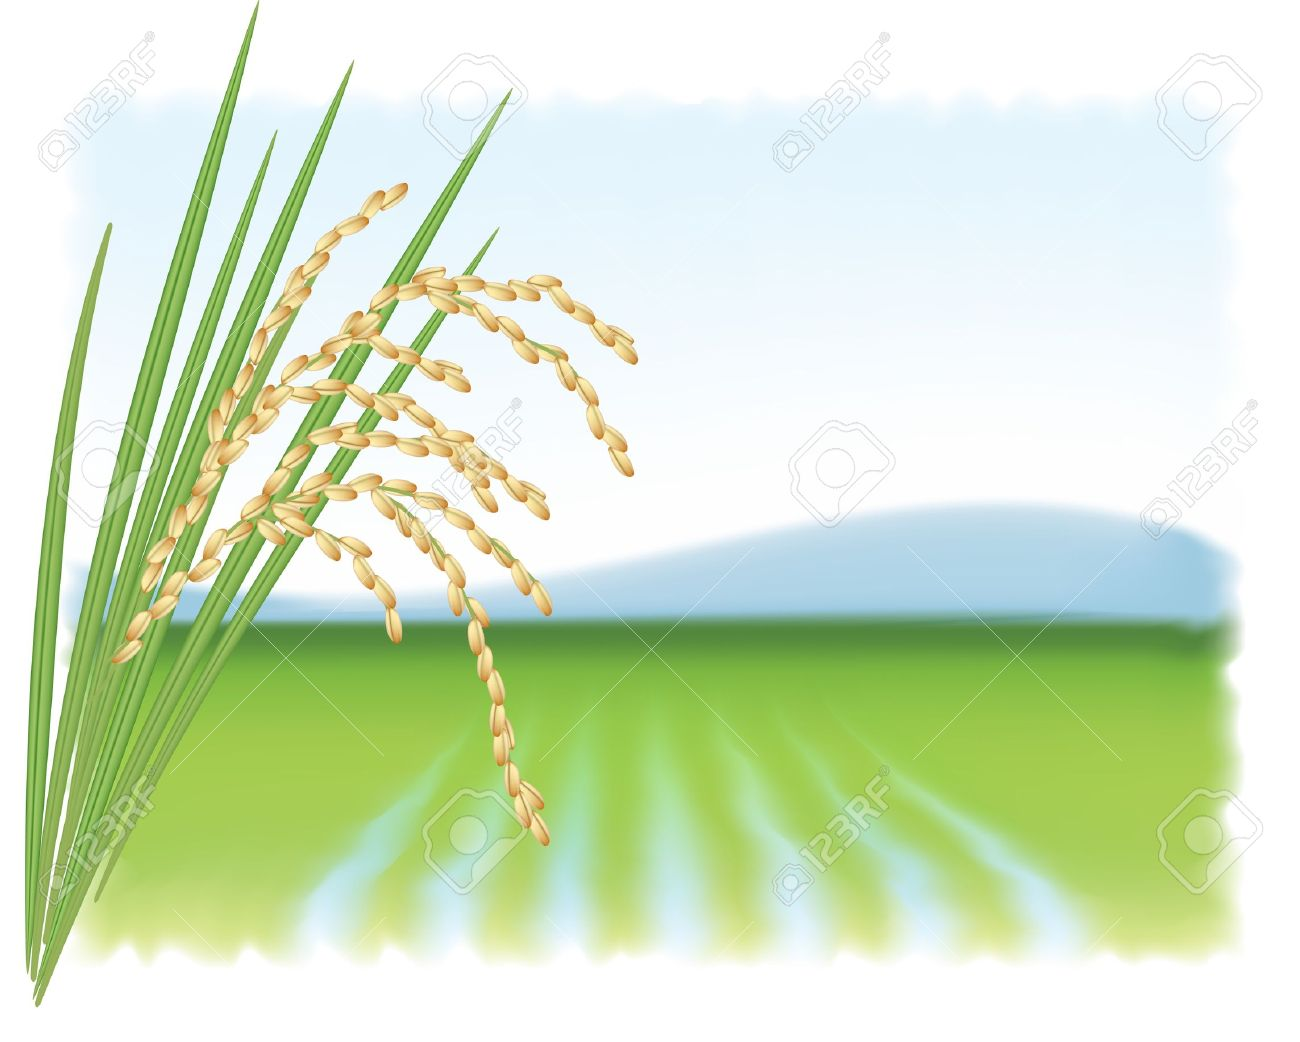 Field clipart rice. Station